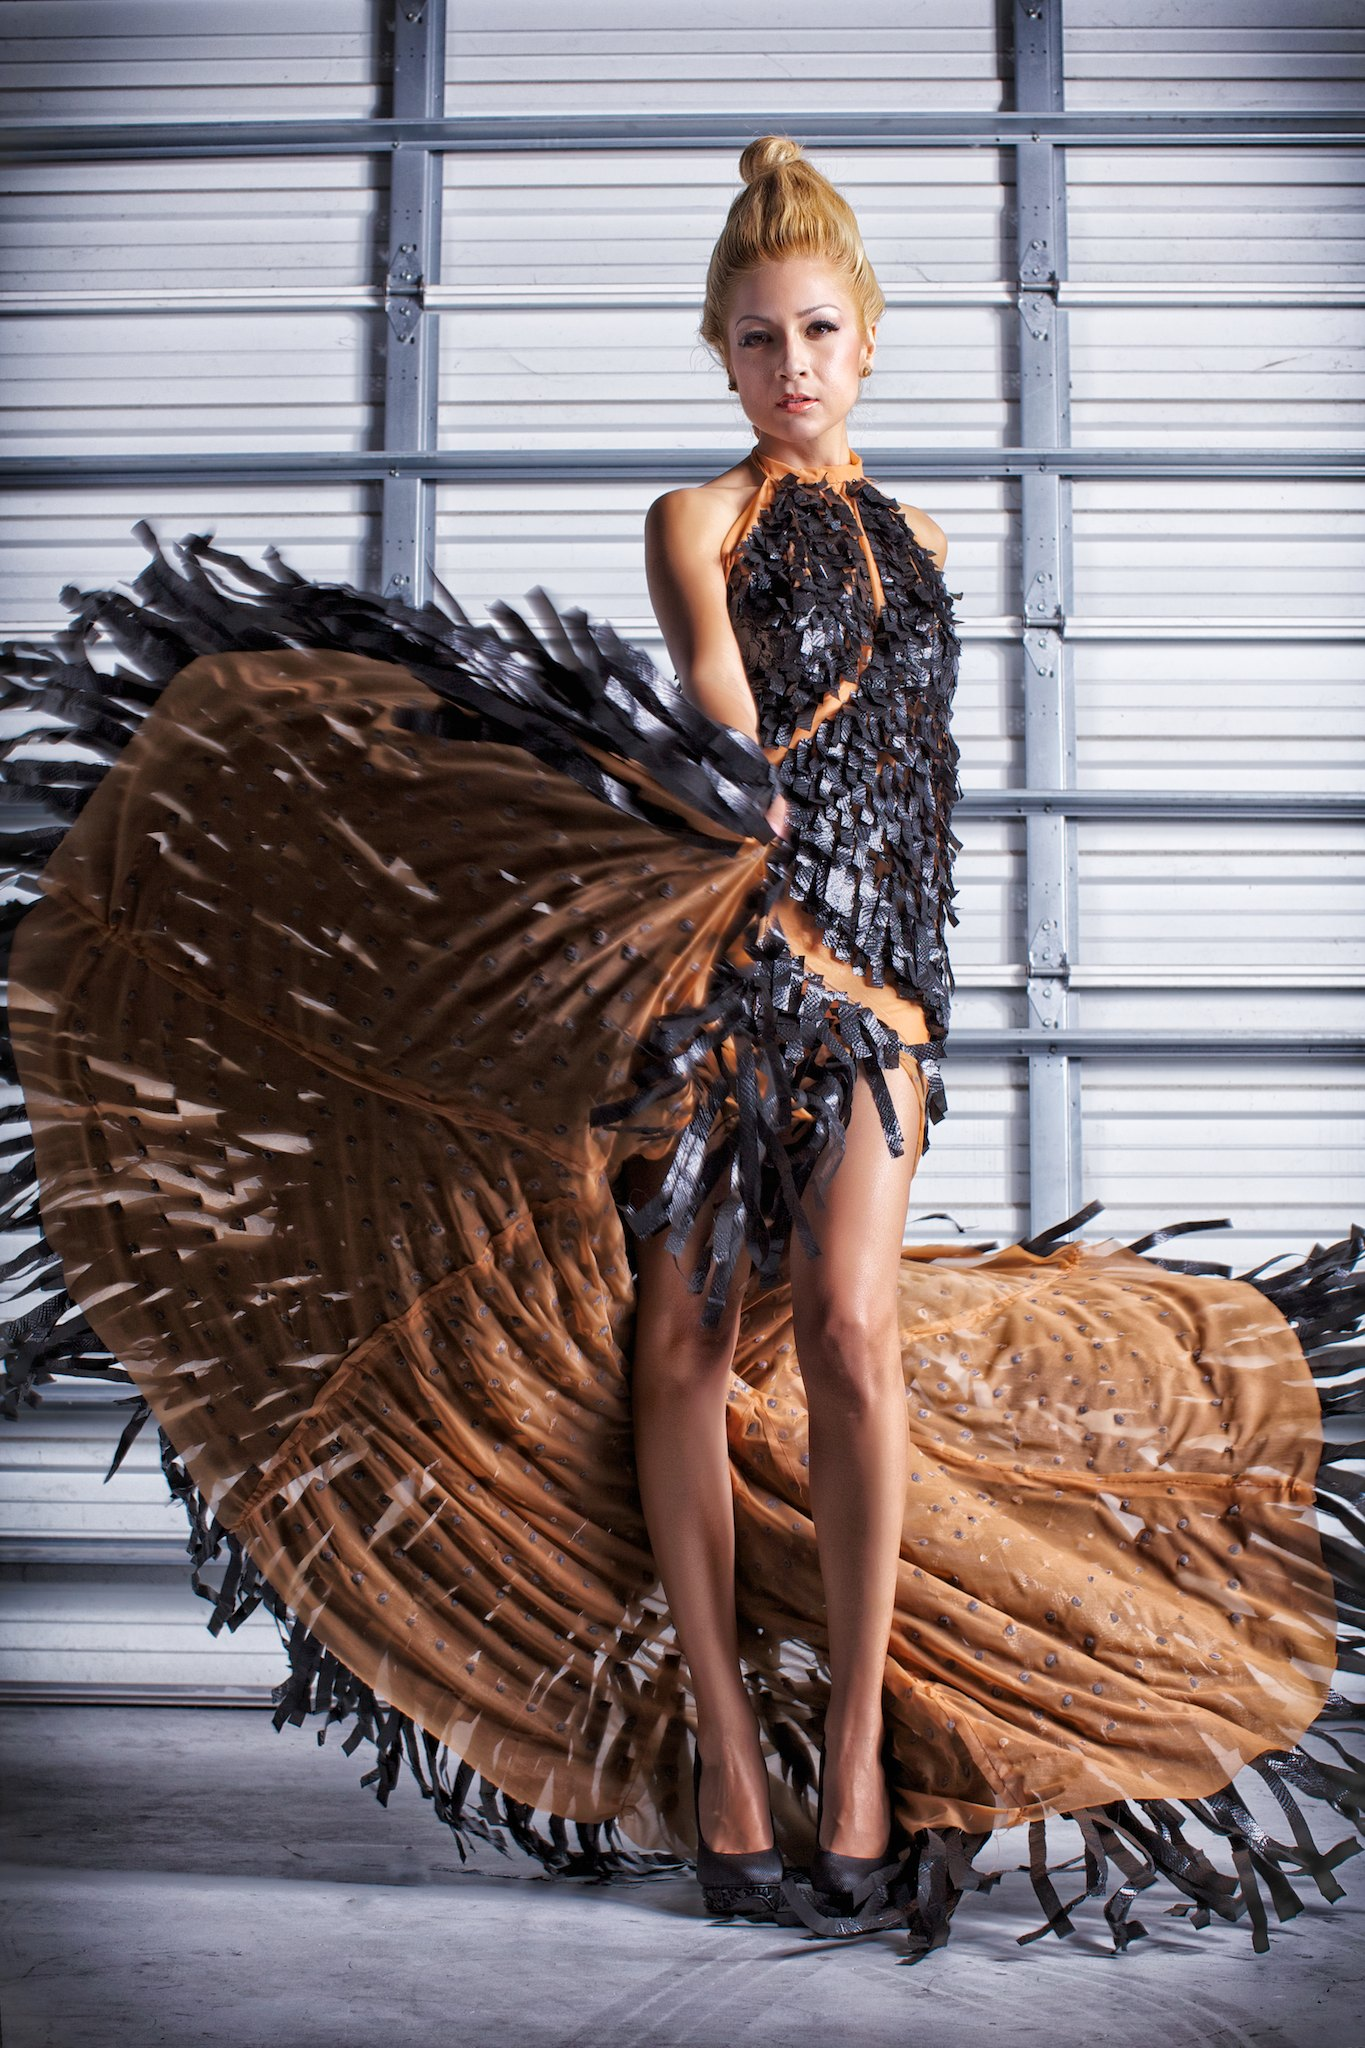 Fashion designs by Mariapia Malerba, made entirely from recycled material.